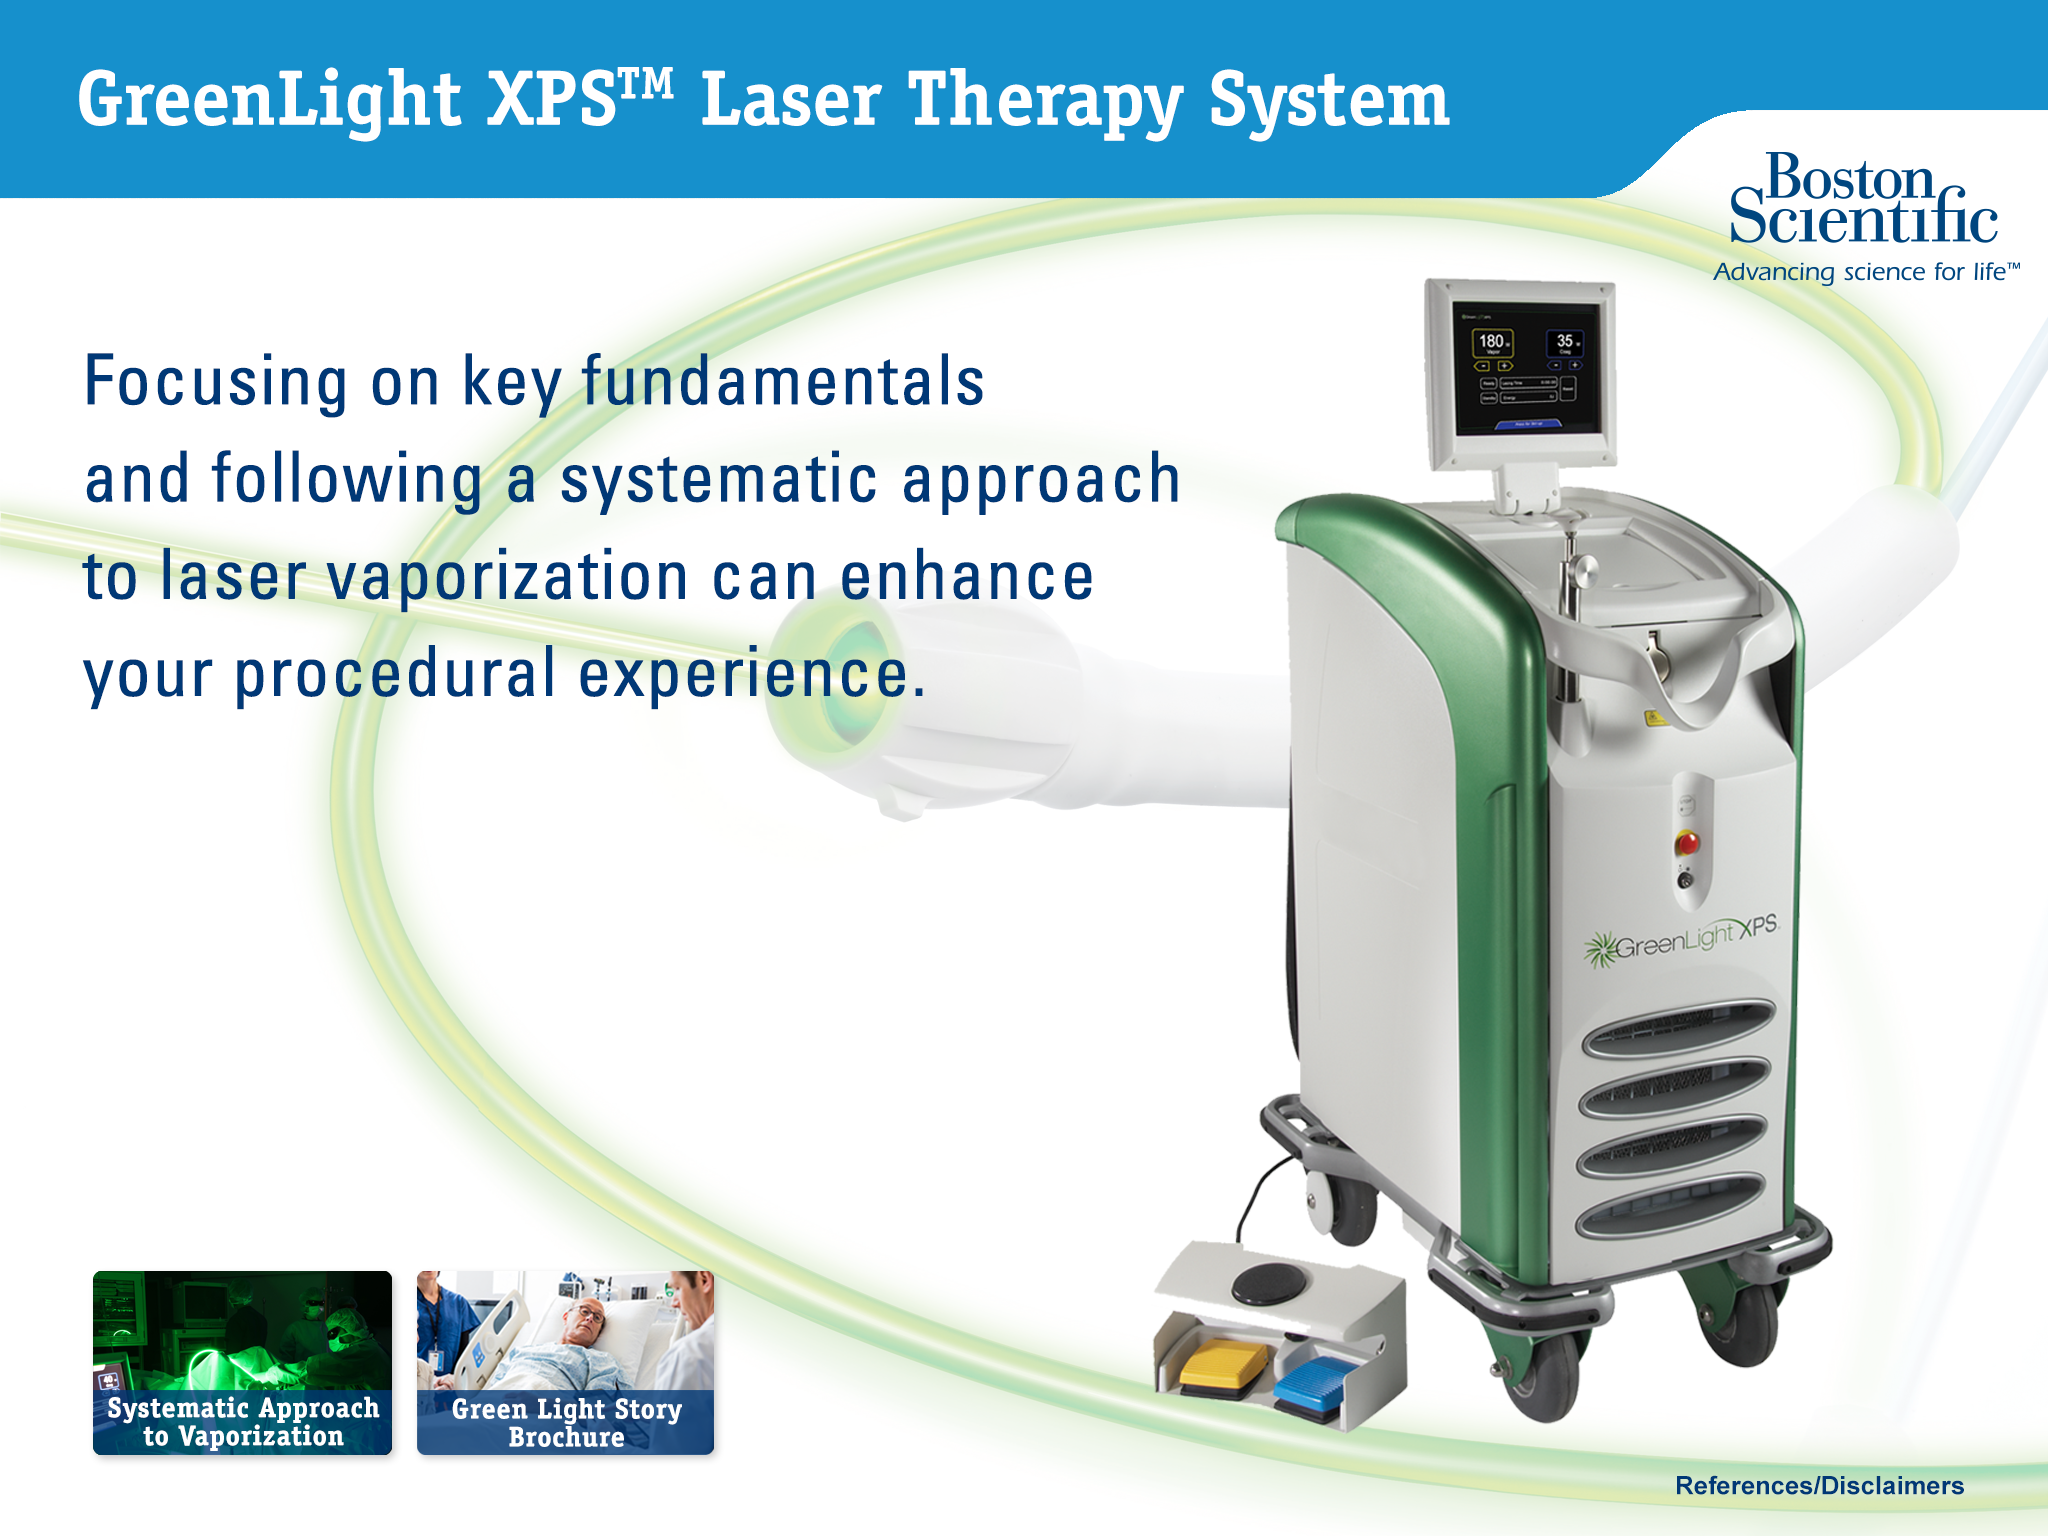 GreenLight XPS Laser Therapy System